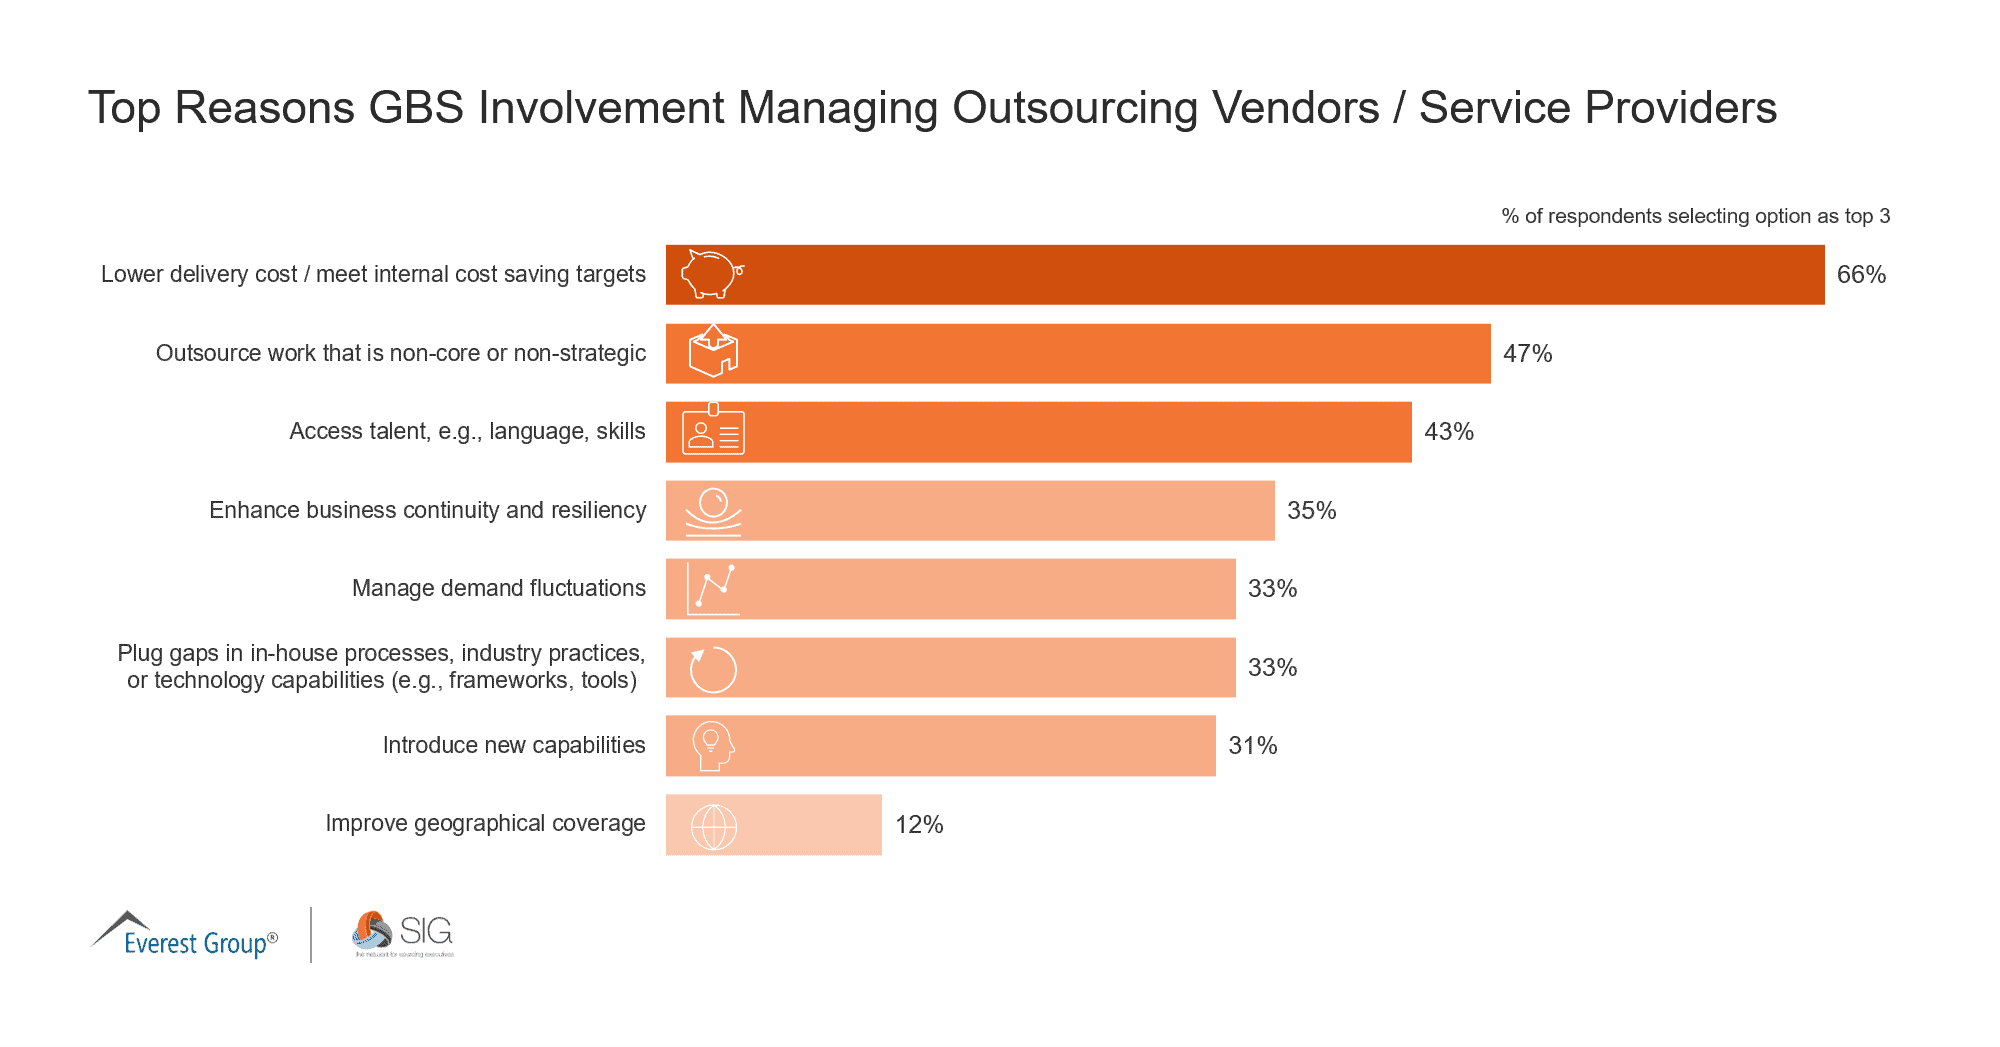 May 2021 Quick Poll | Top Reasons GBS Involvement Managing Outsourcing Vendors - Service Providers